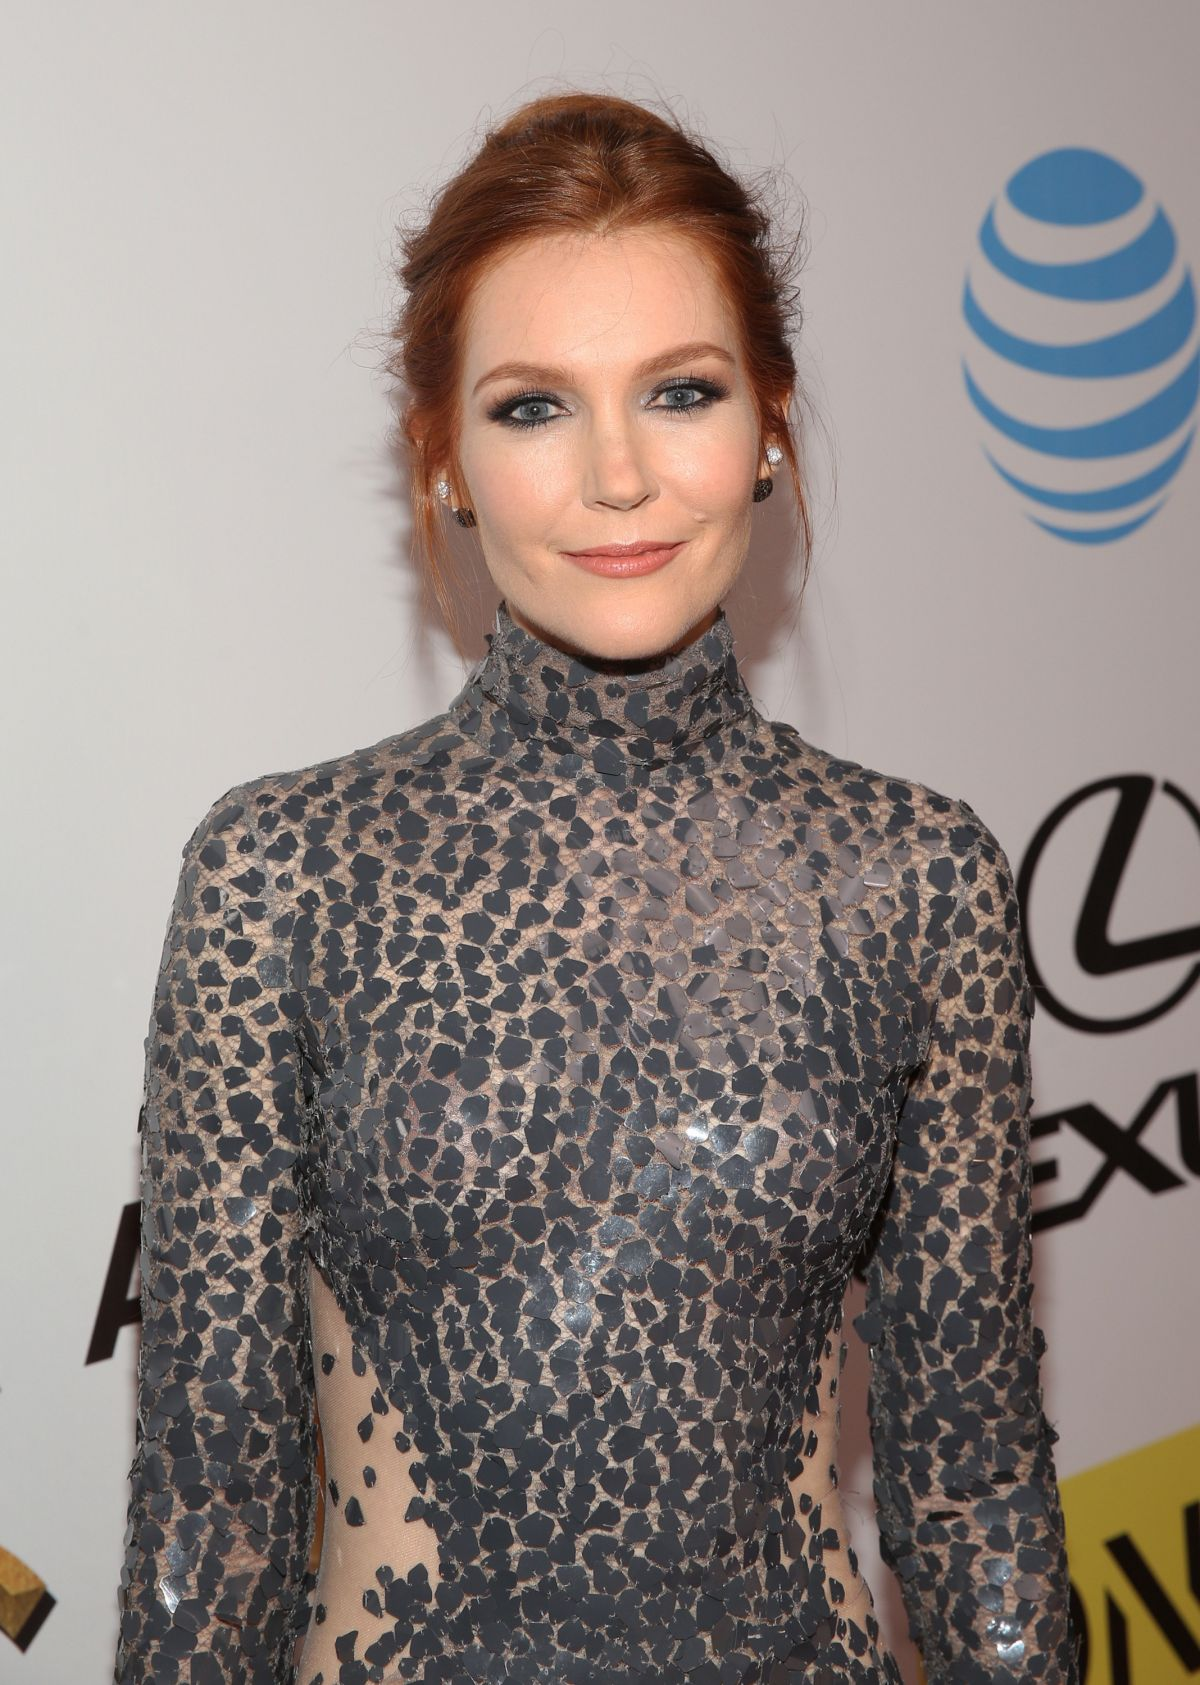 Darby Stanchfield nudes (49 photo), Tits, Cleavage, Selfie, braless 2018